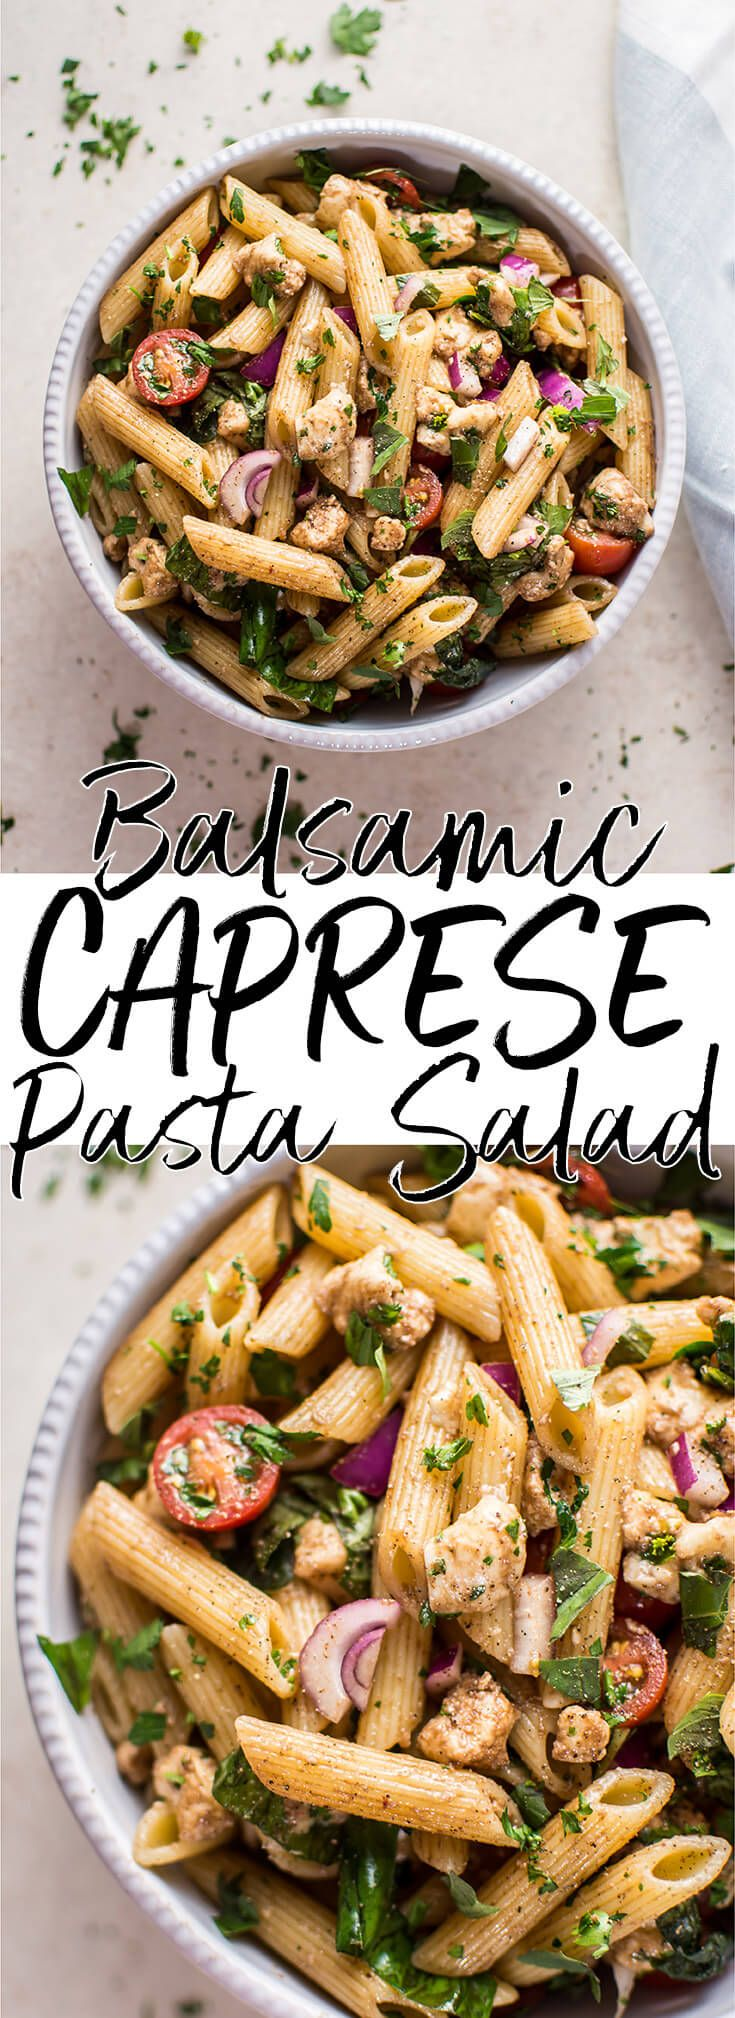 This balsamic caprese pasta salad is a light, quick, and simple vegetarian side dish that's perfect for picnics or BBQs. This pasta salad has the delicious classic caprese flavor combination of tomatoes, basil, and fresh mozzarella, with balsamic vinegar and olive oil making up the dressing.